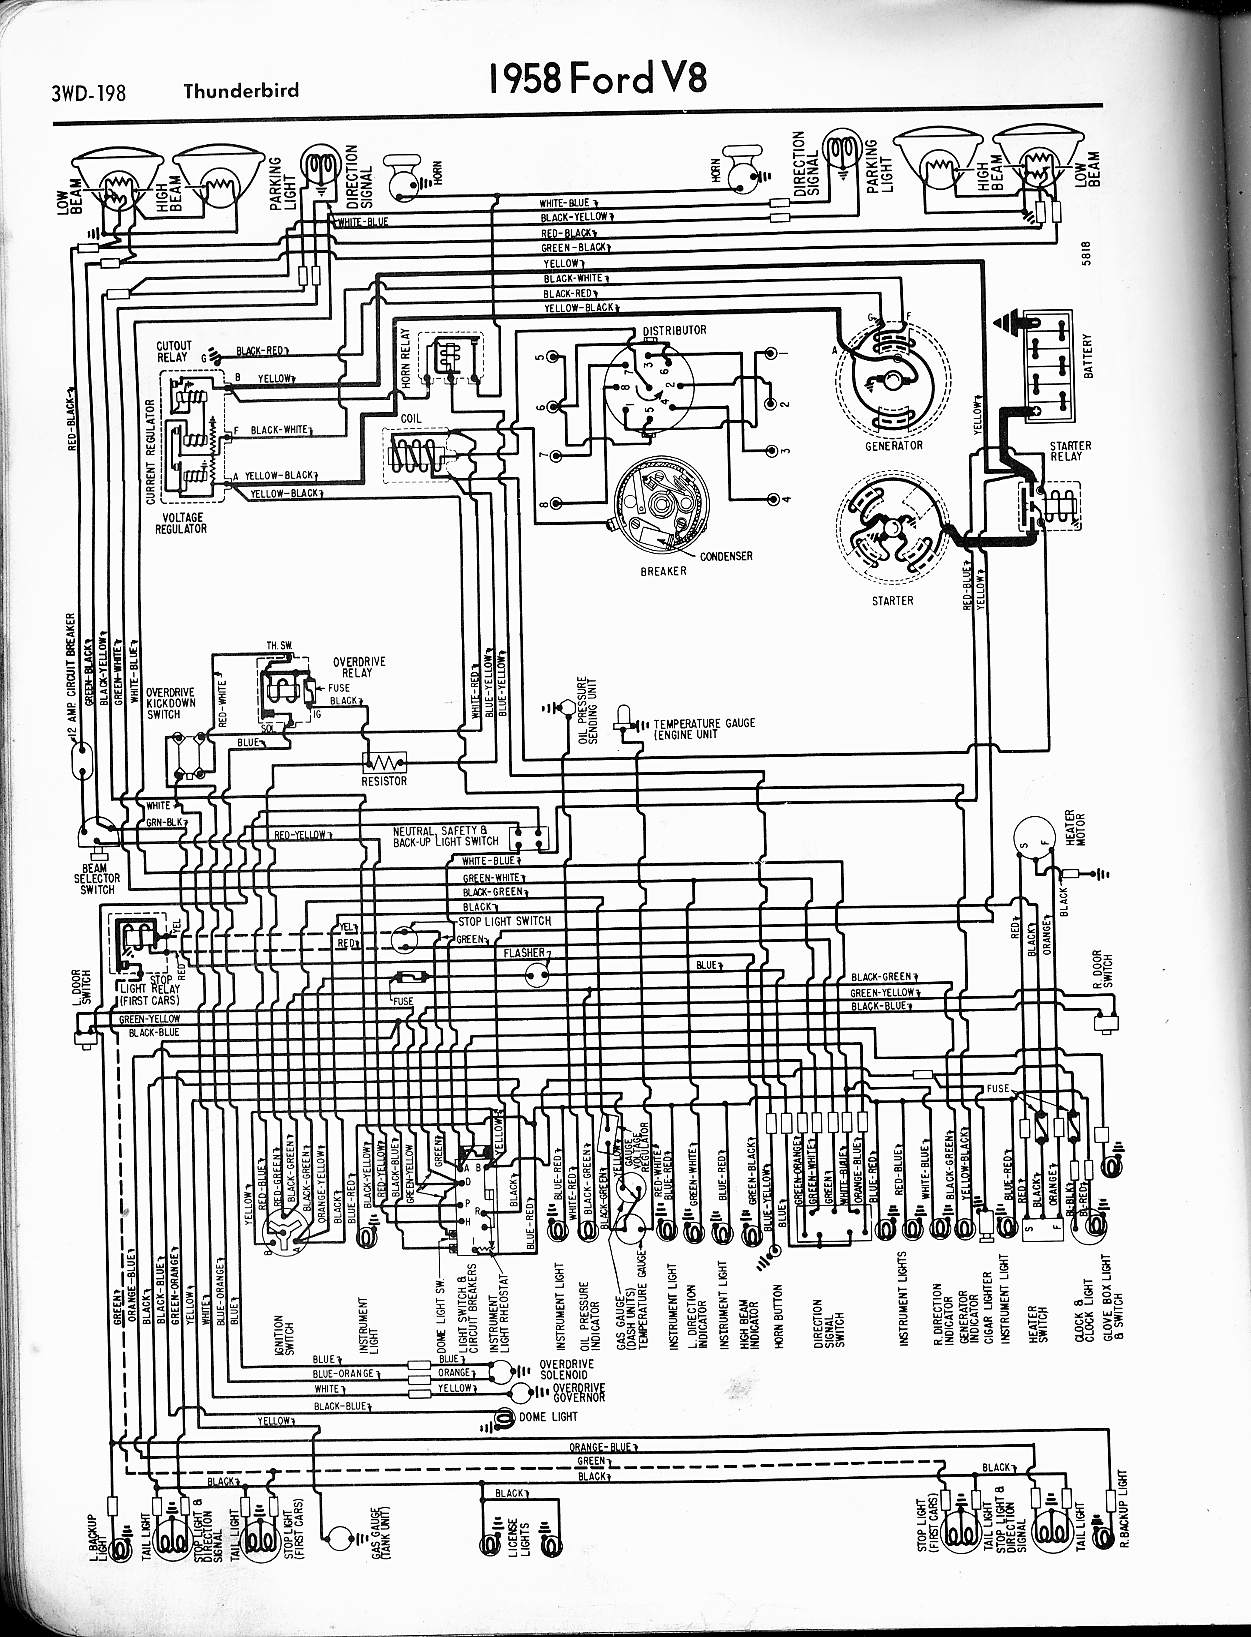 57 65 Ford Wiring Diagrams Subaru Power Window Switch Diagram 2003 1958 Thunderbird